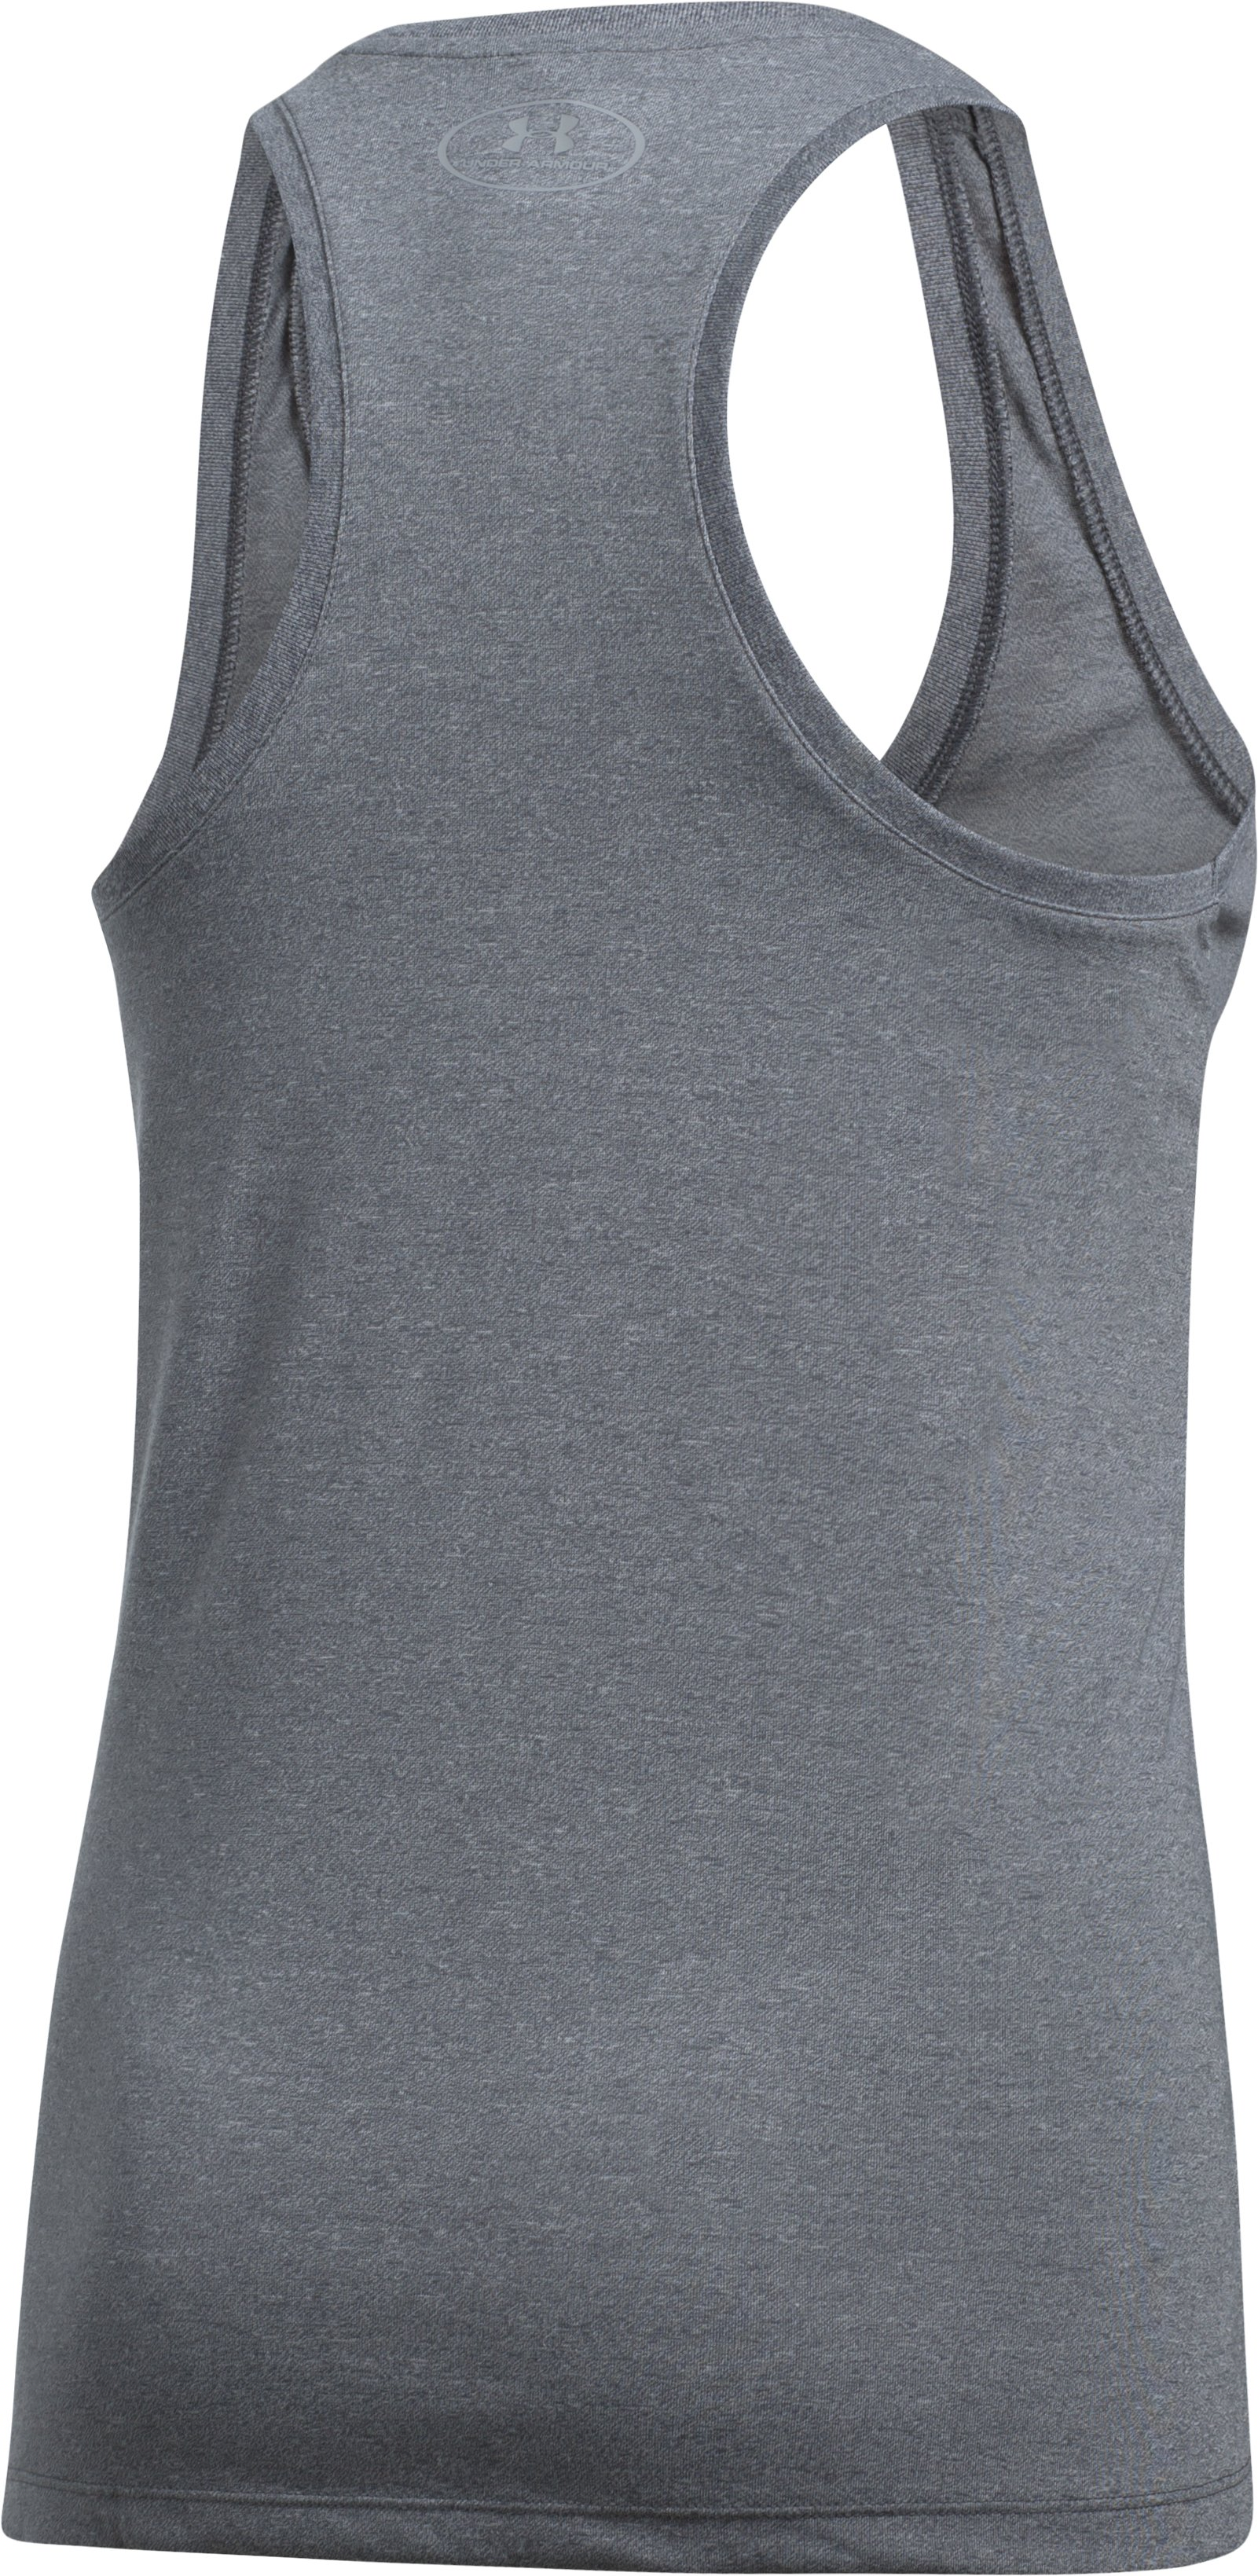 Women's UA Threadborne Train Wordmark Tank -Twist, RHINO GRAY